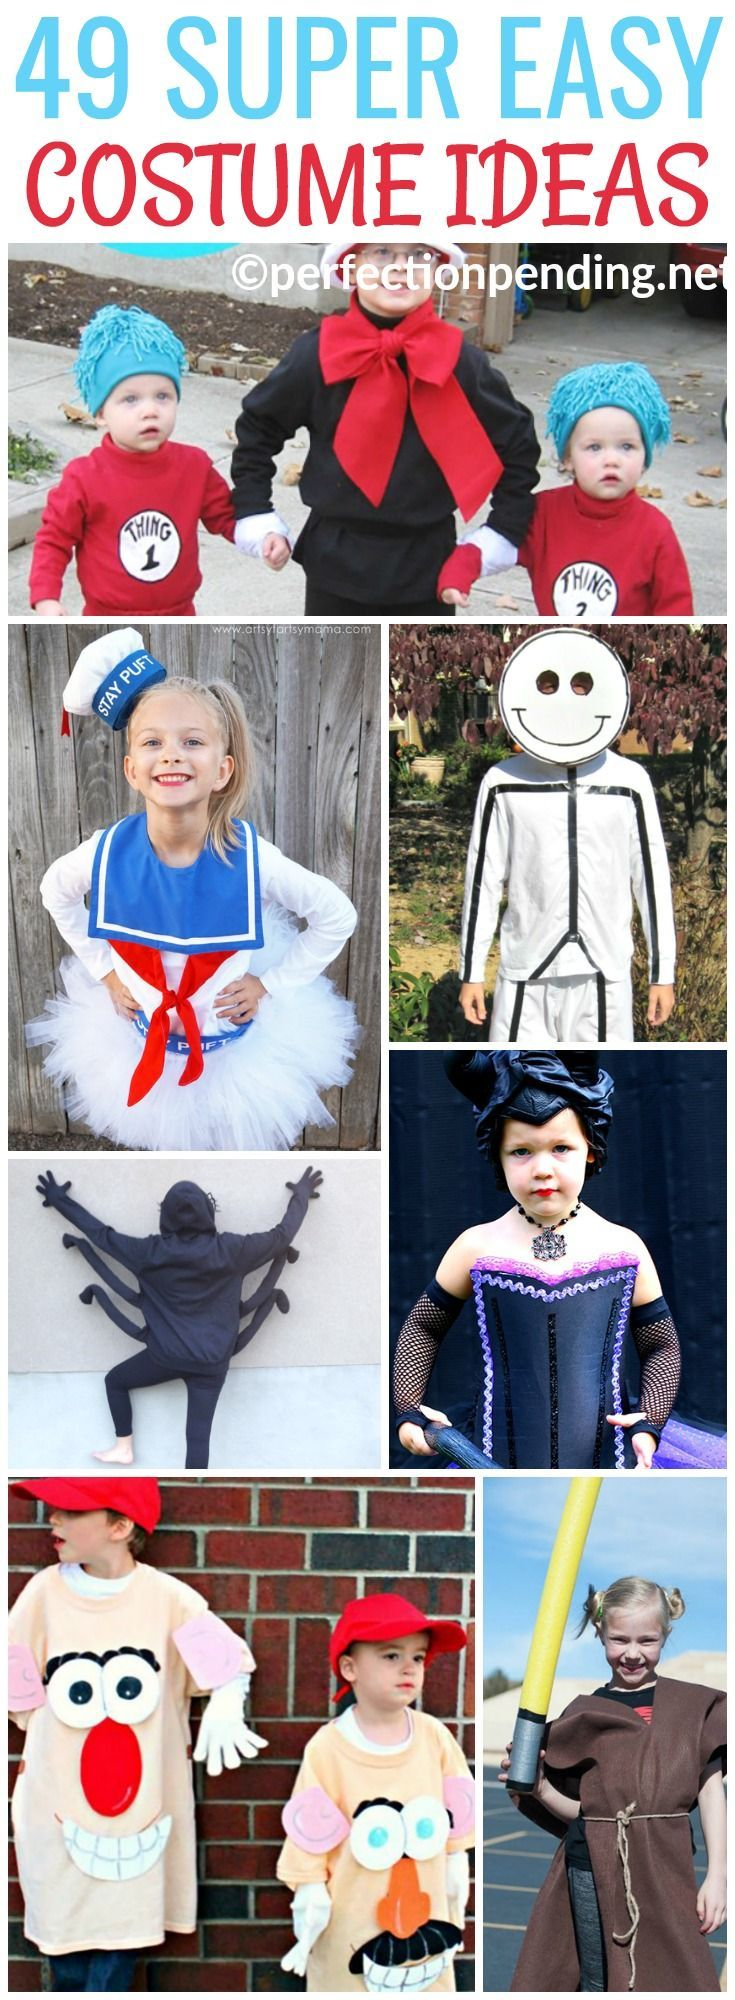 Let's be honest, sometimes it's hard to find cheap costume